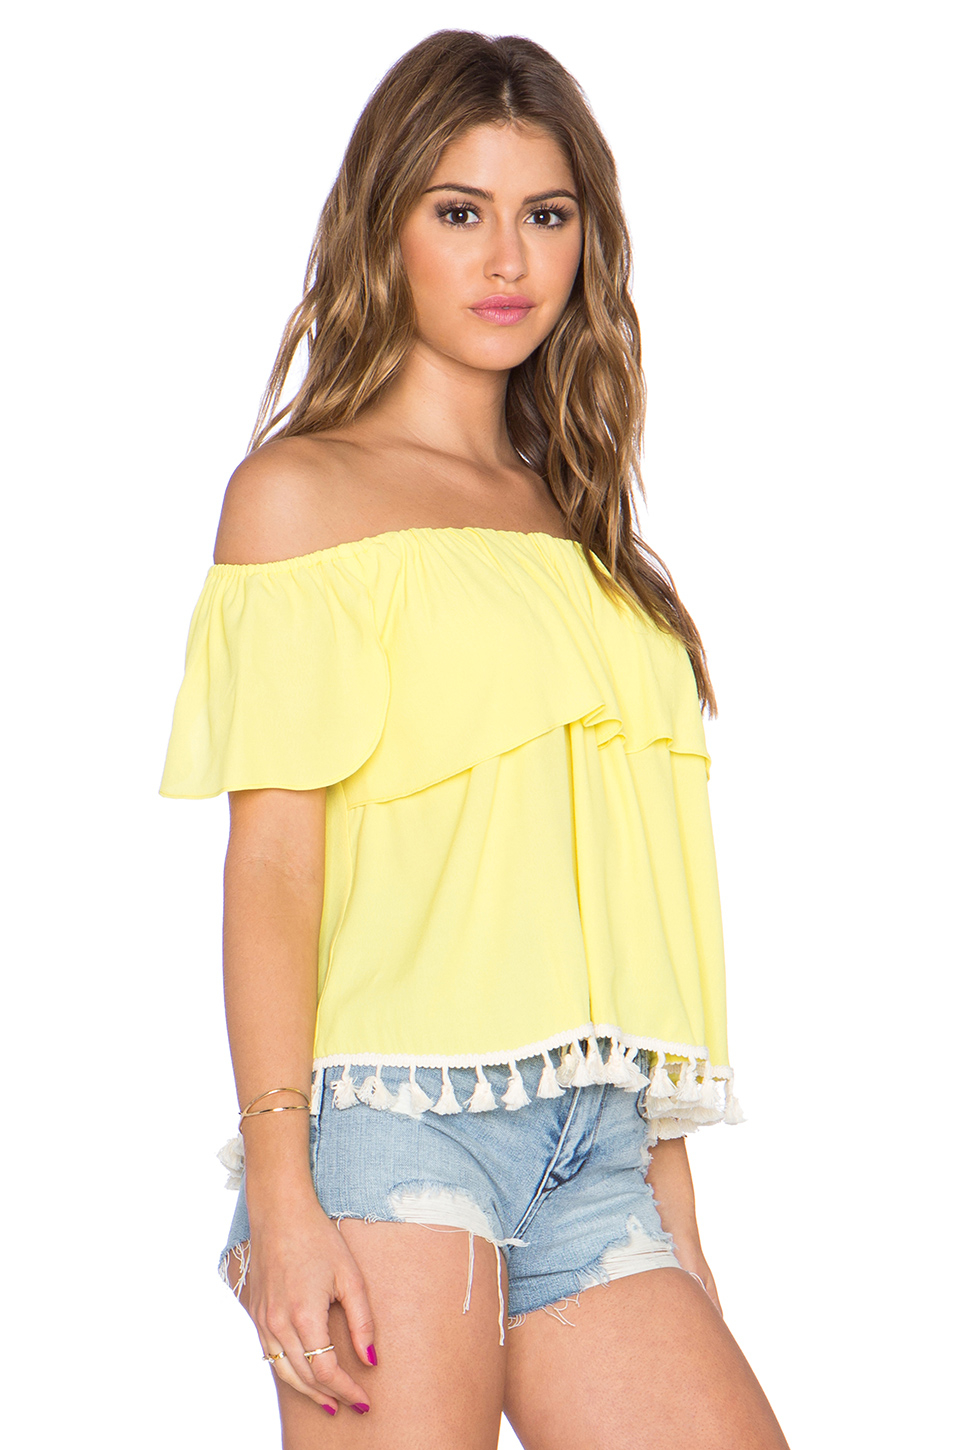 T-bags Off The Shoulder Top in Yellow | Lyst